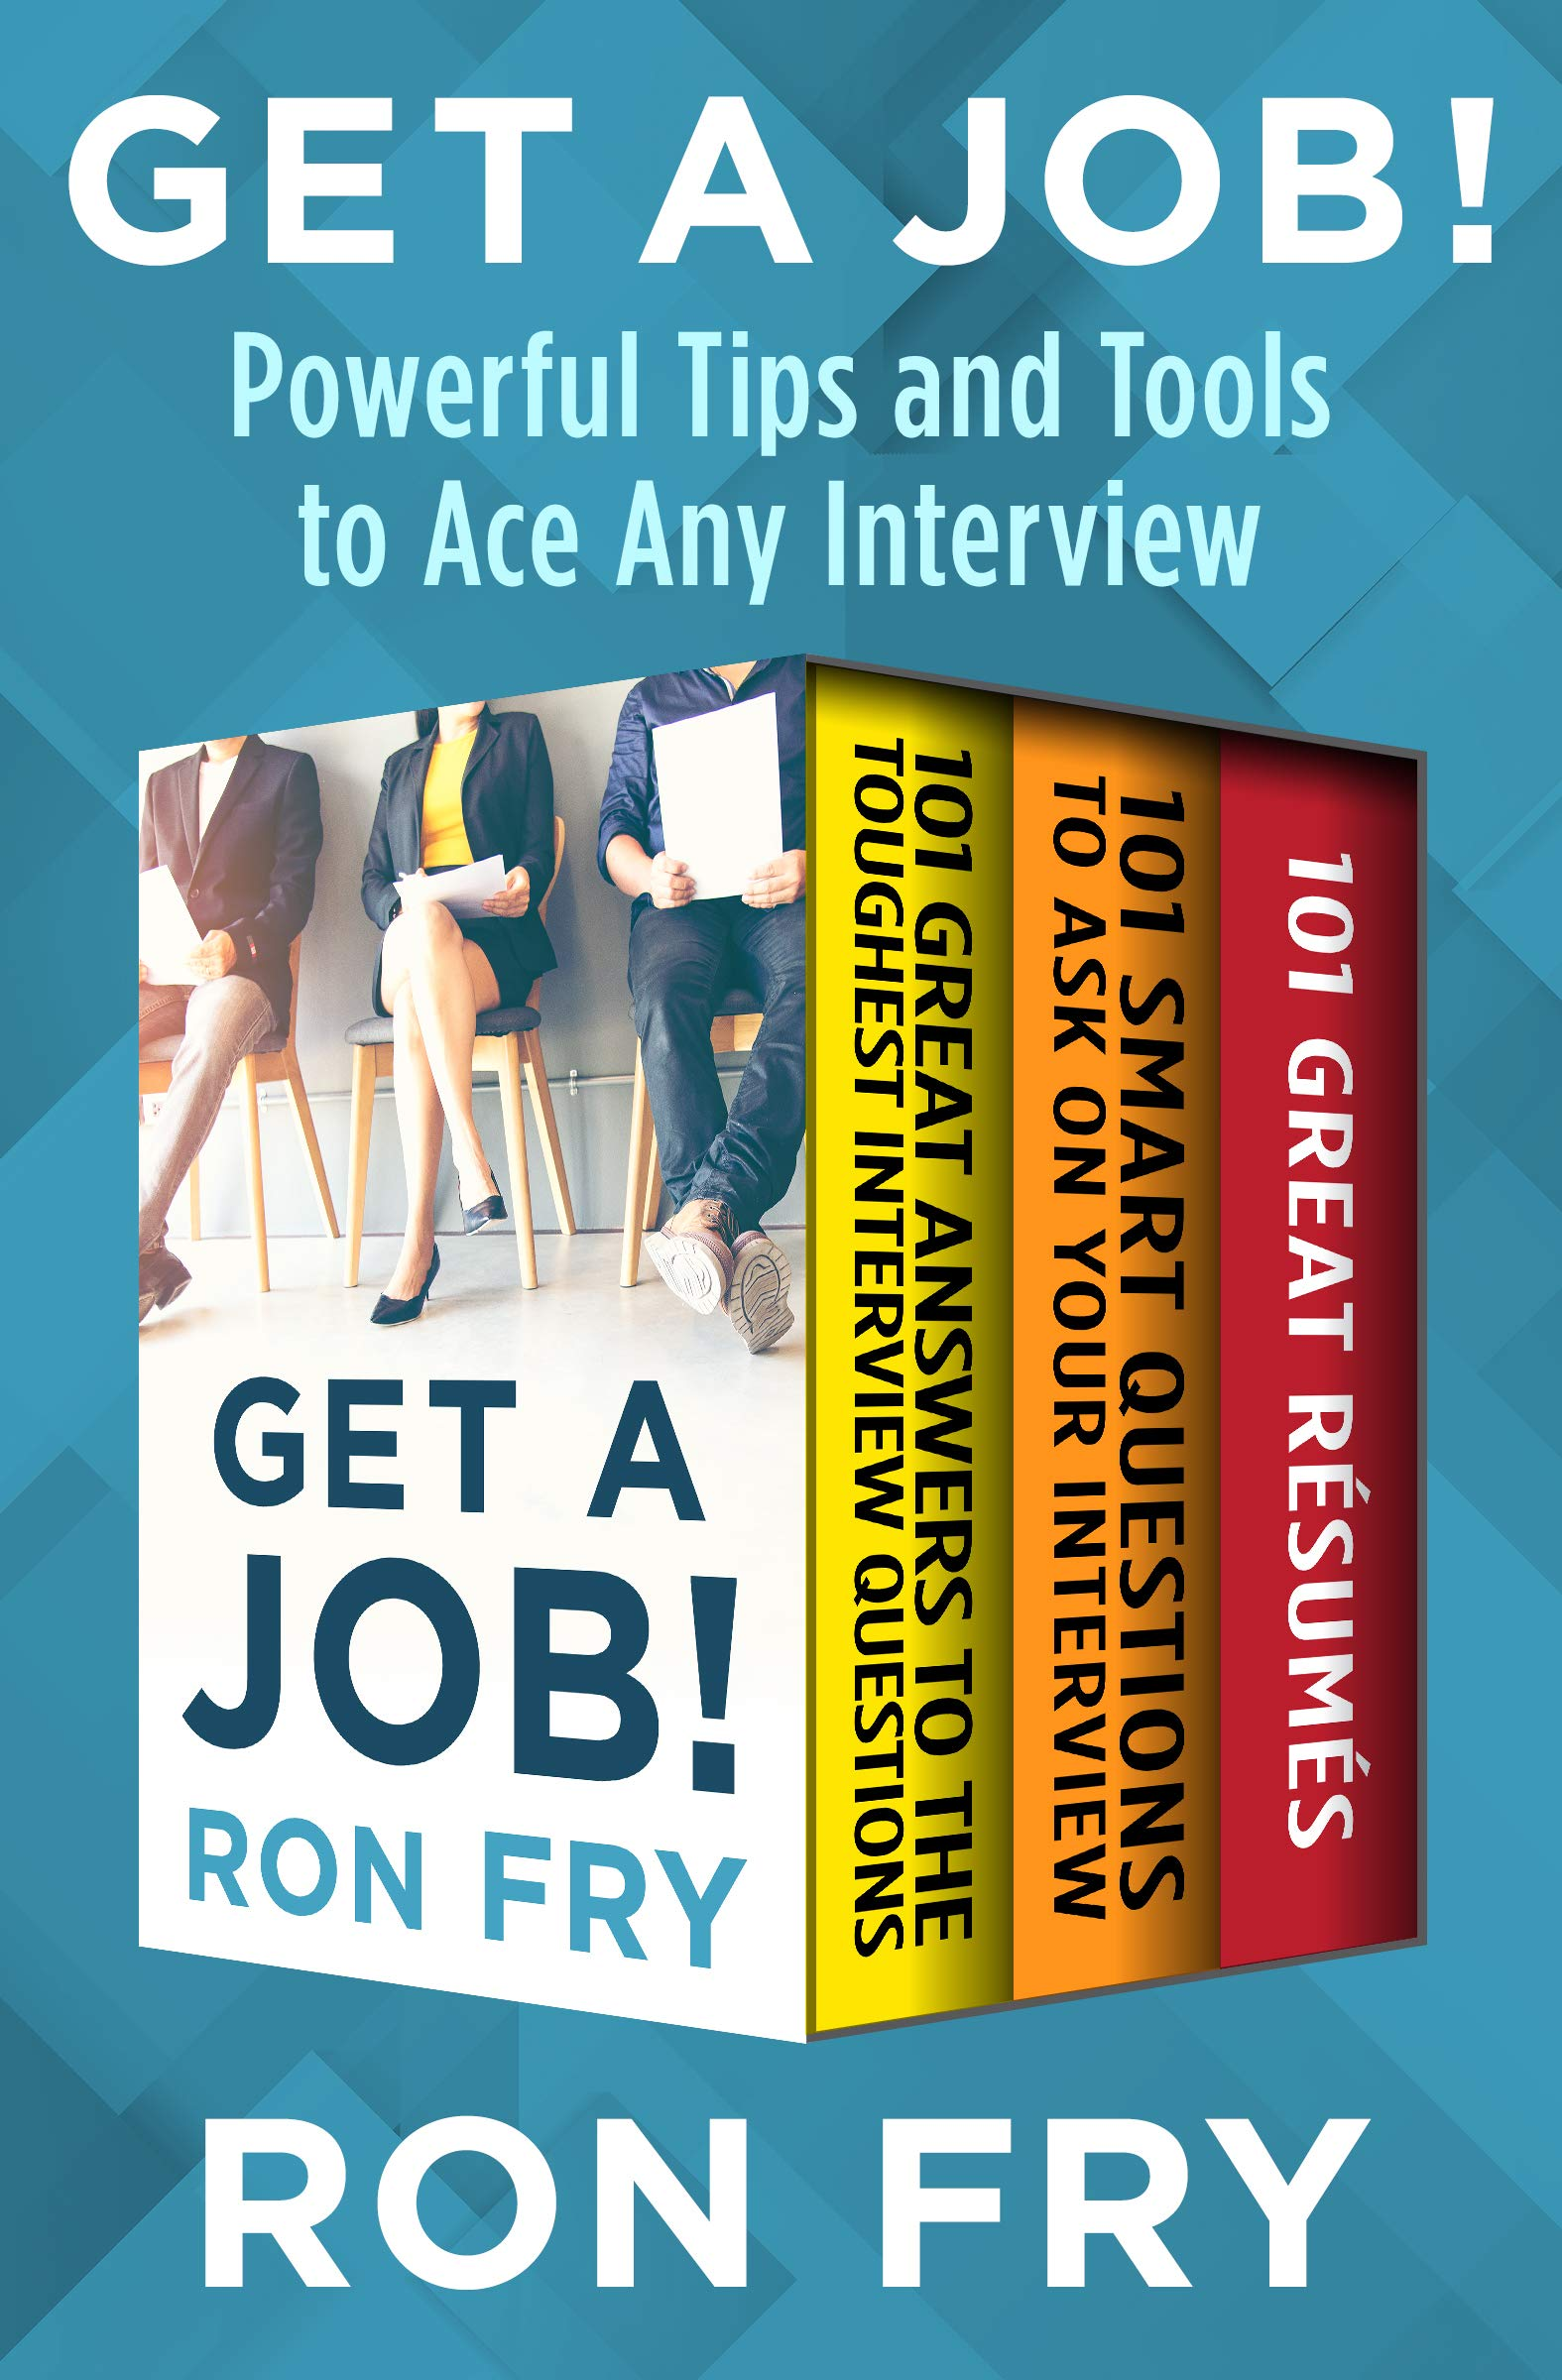 Get a Job!: Powerful Tips and Tools to Ace Any Interview